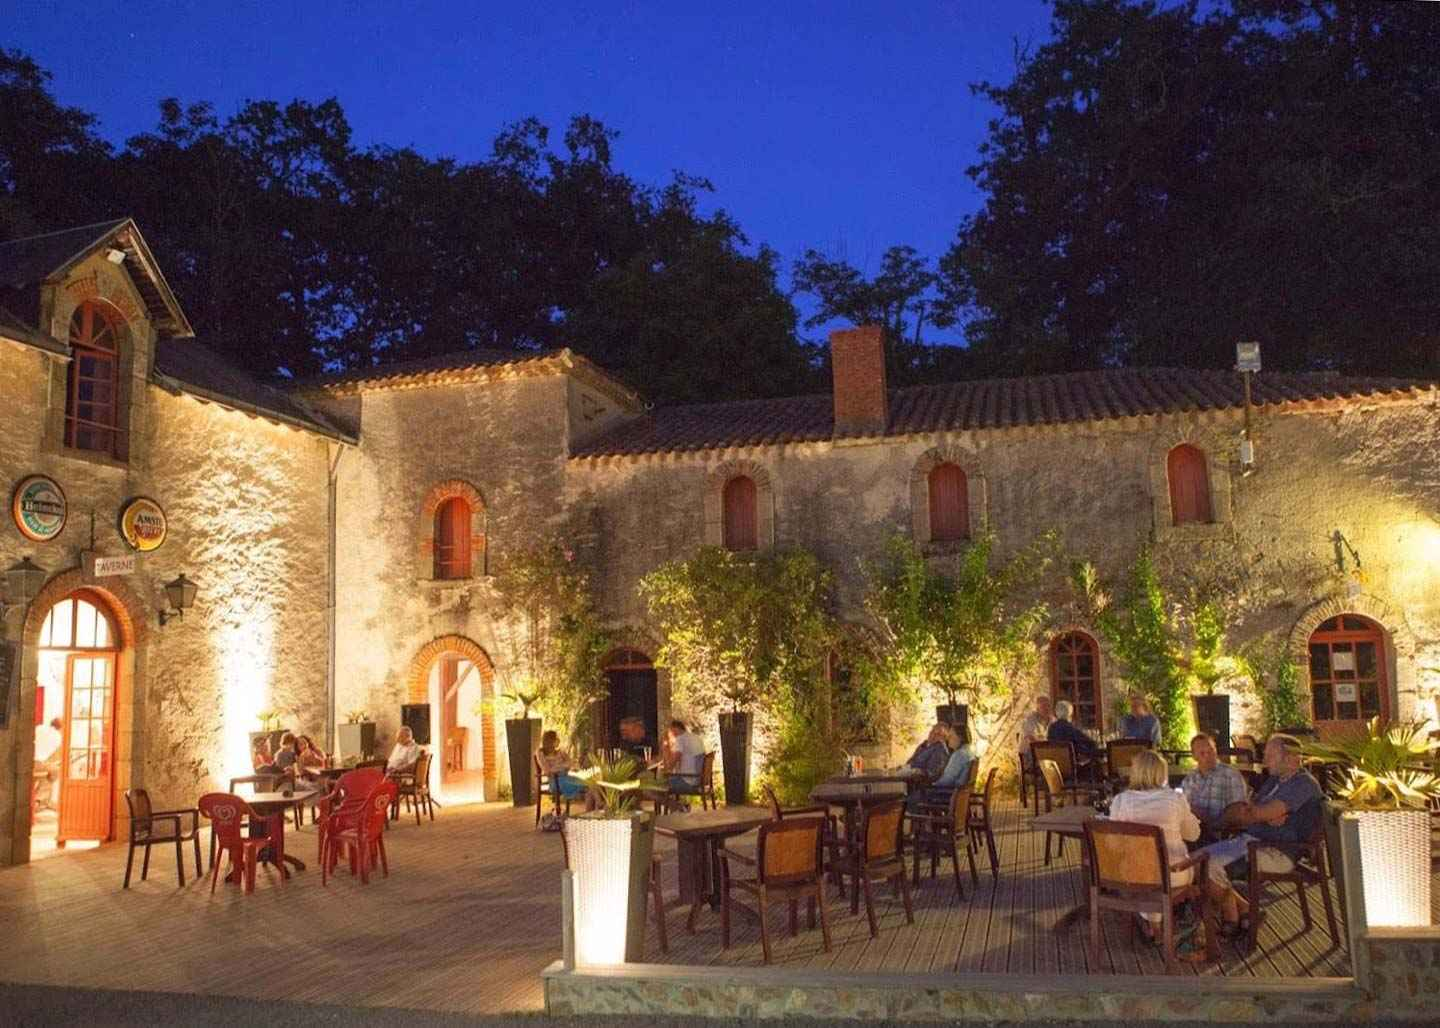 Interviews with the people behind three family travel destinations. Insights of how each family travel destination is run and their commitment to customers. Family Travel Destinations, our top picks interviewed on Falcondale Life blog. Image description: The courtyard at Chateau la Foret